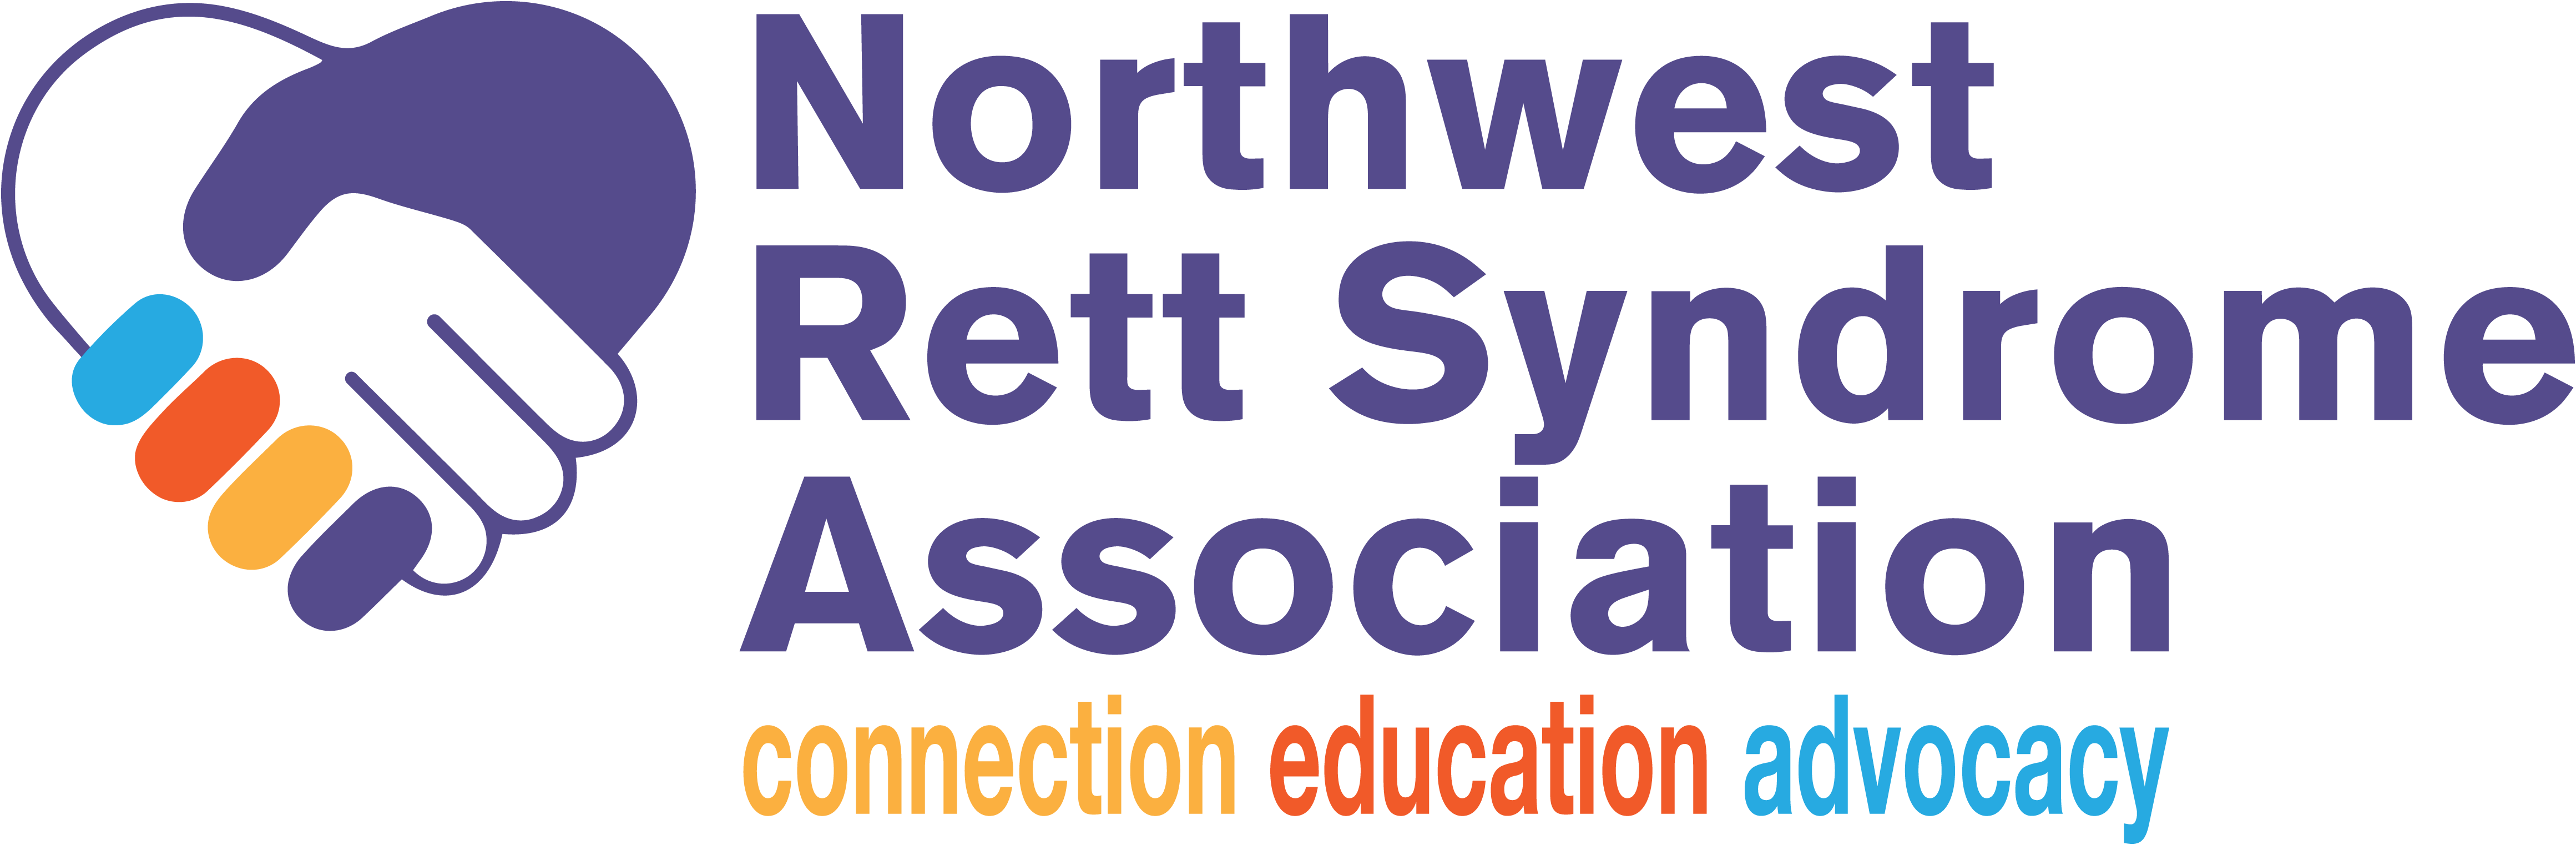 Northwest Rett Syndrome Association logo.